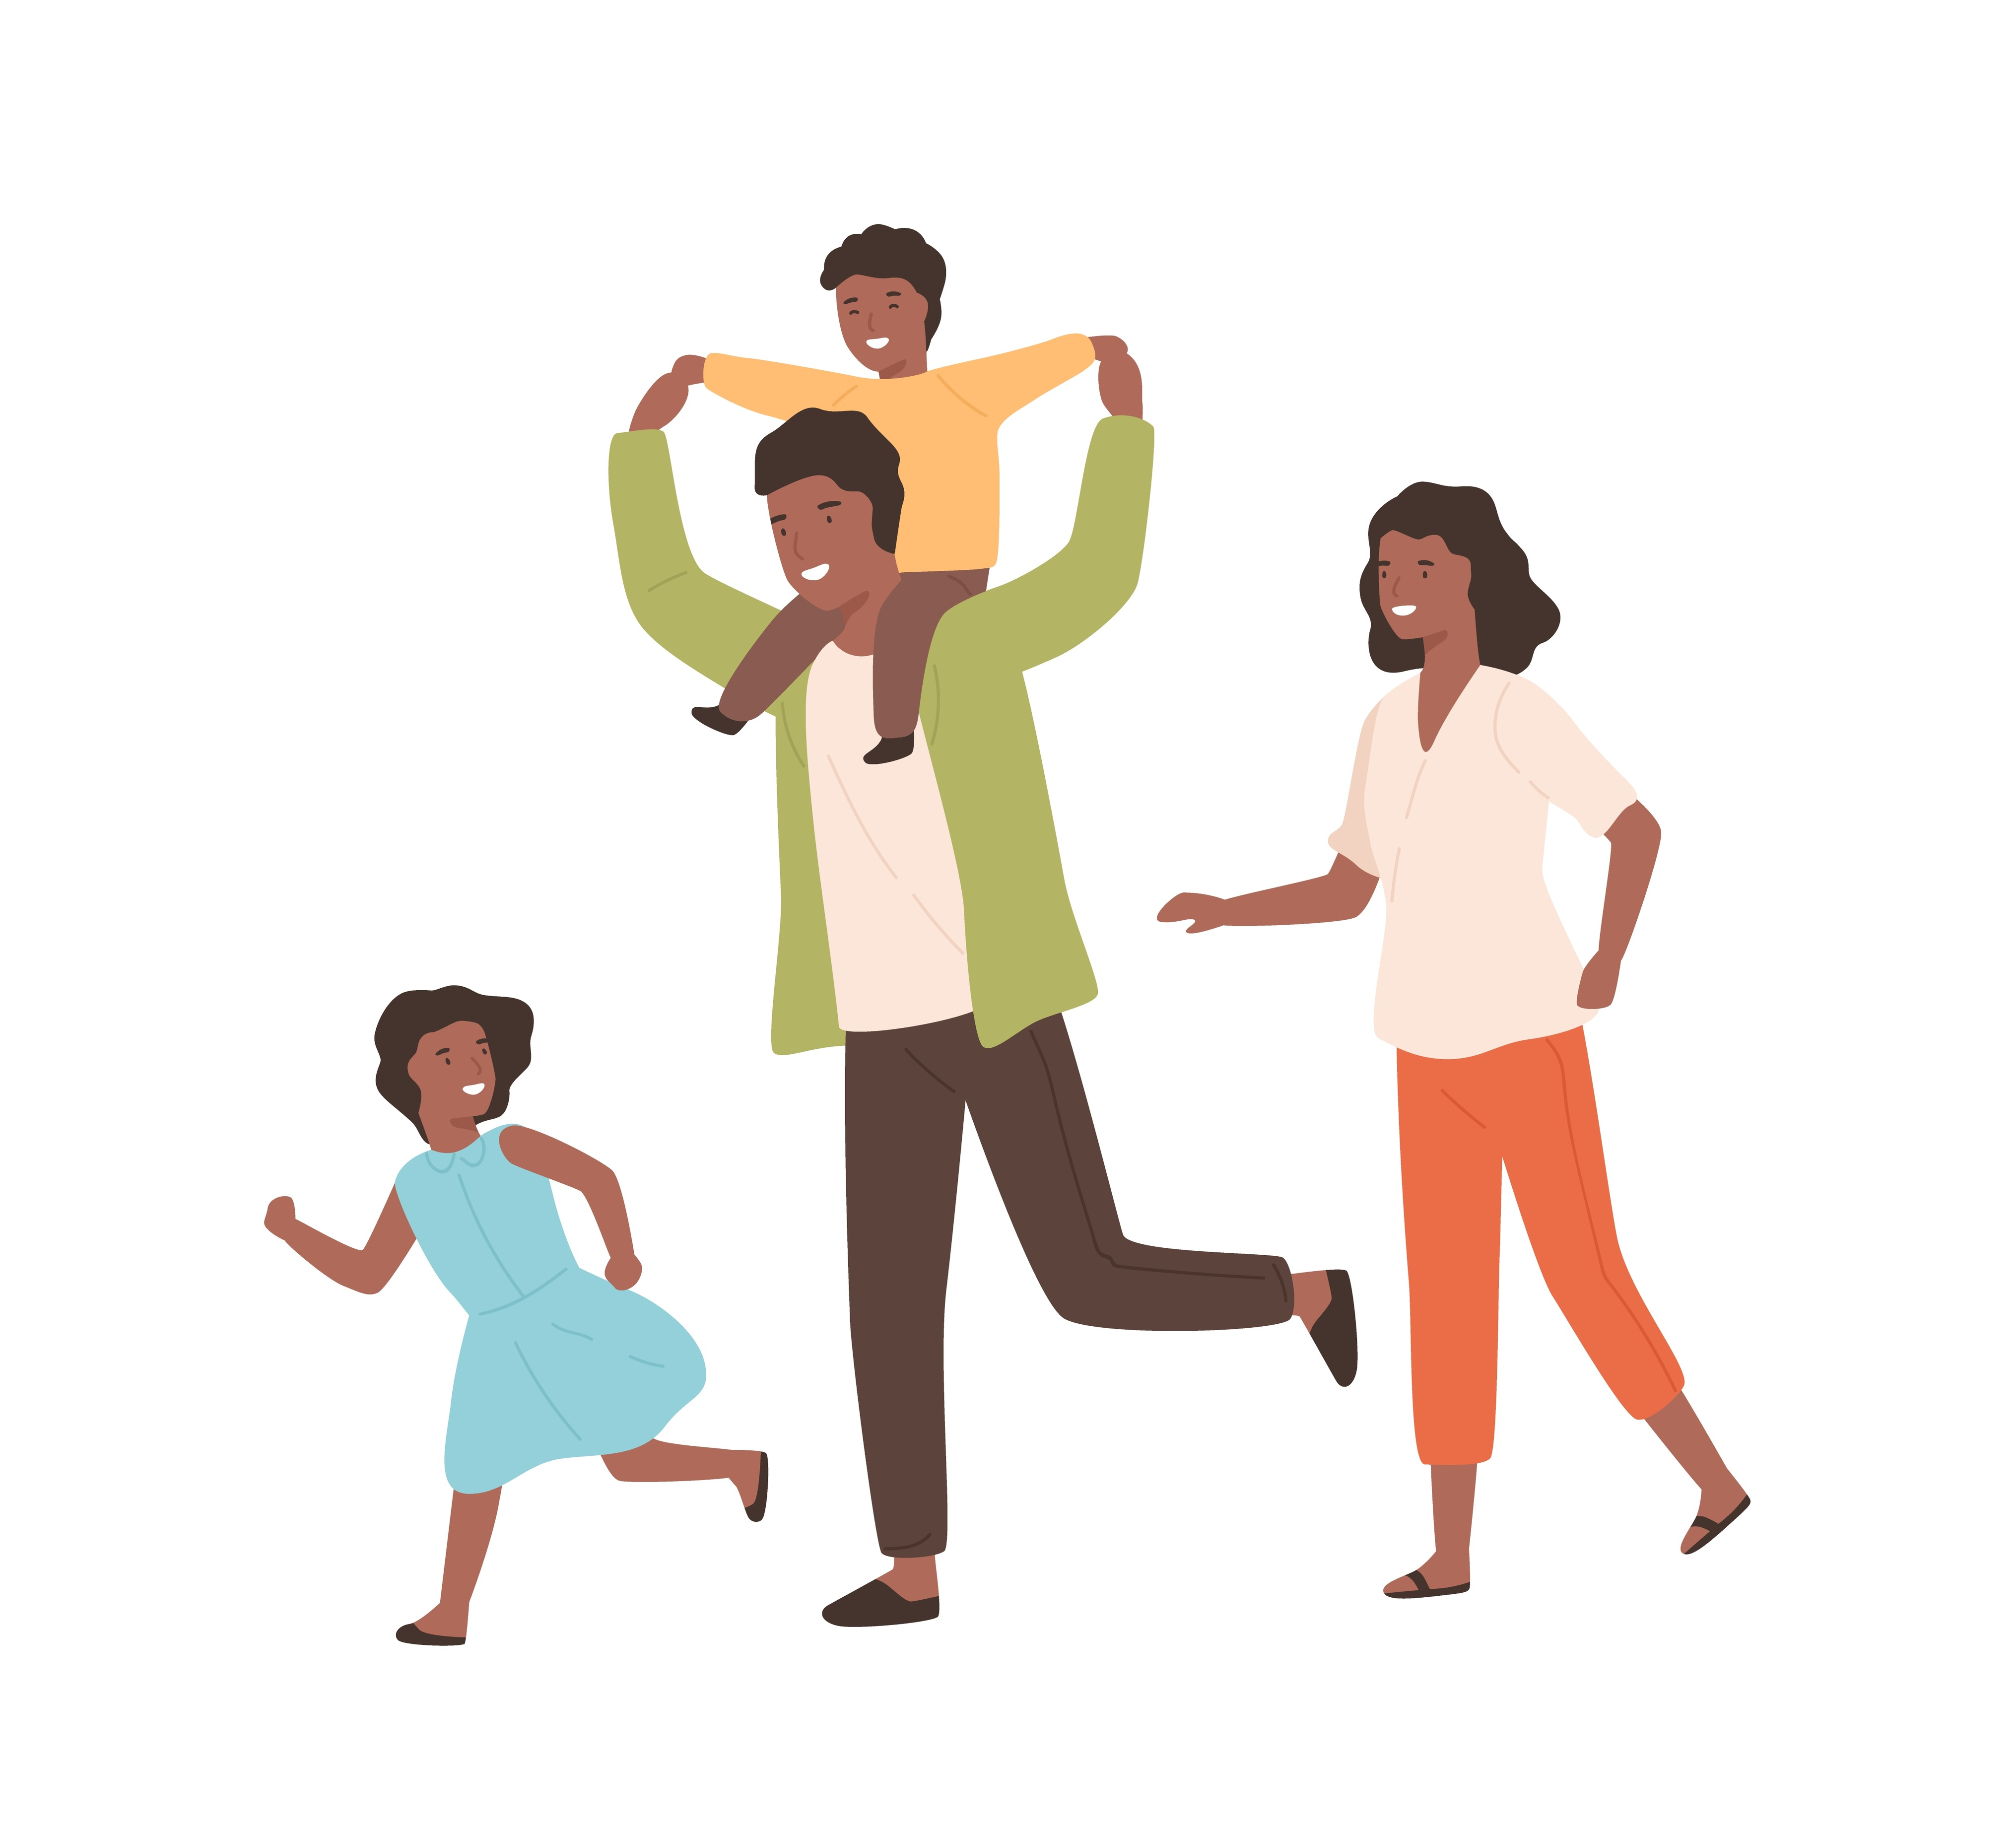 Illustration of a family smiling at each other, with one child on their father's shoulders.